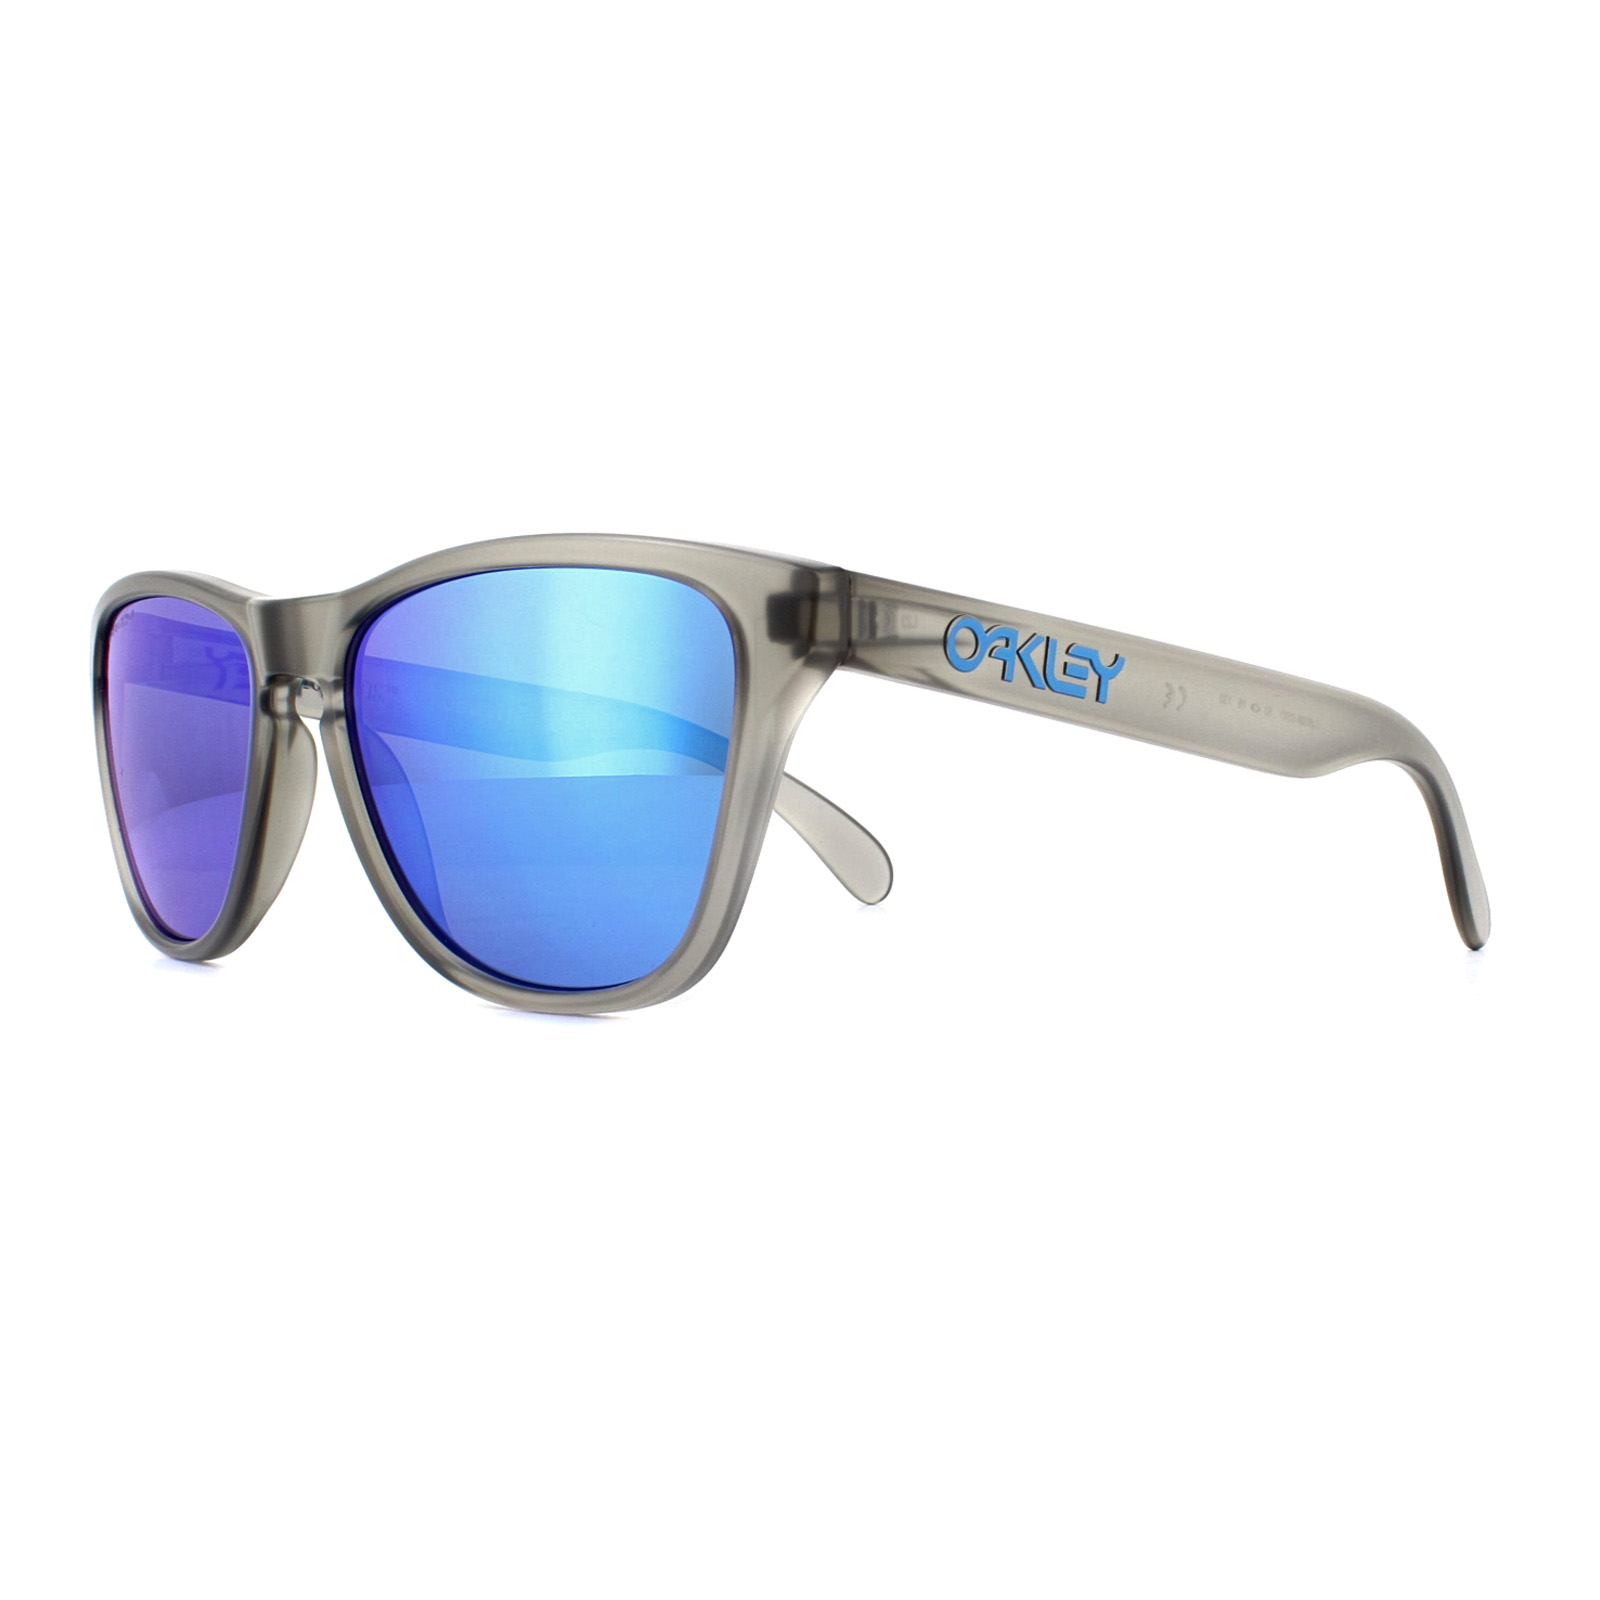 adf14eeee2 Cheap Oakley Frogskins XS Sunglasses - Discounted Sunglasses